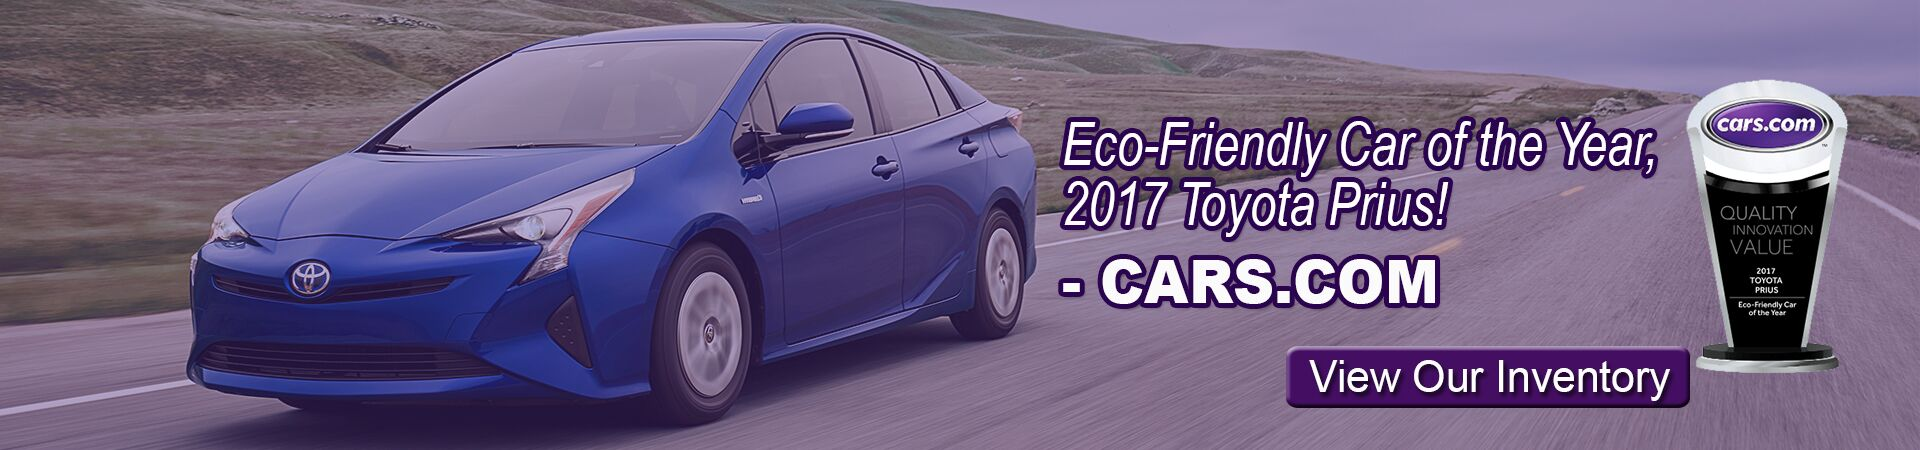 New 2017 Prius wins Eco-Friendly Car of the Year!